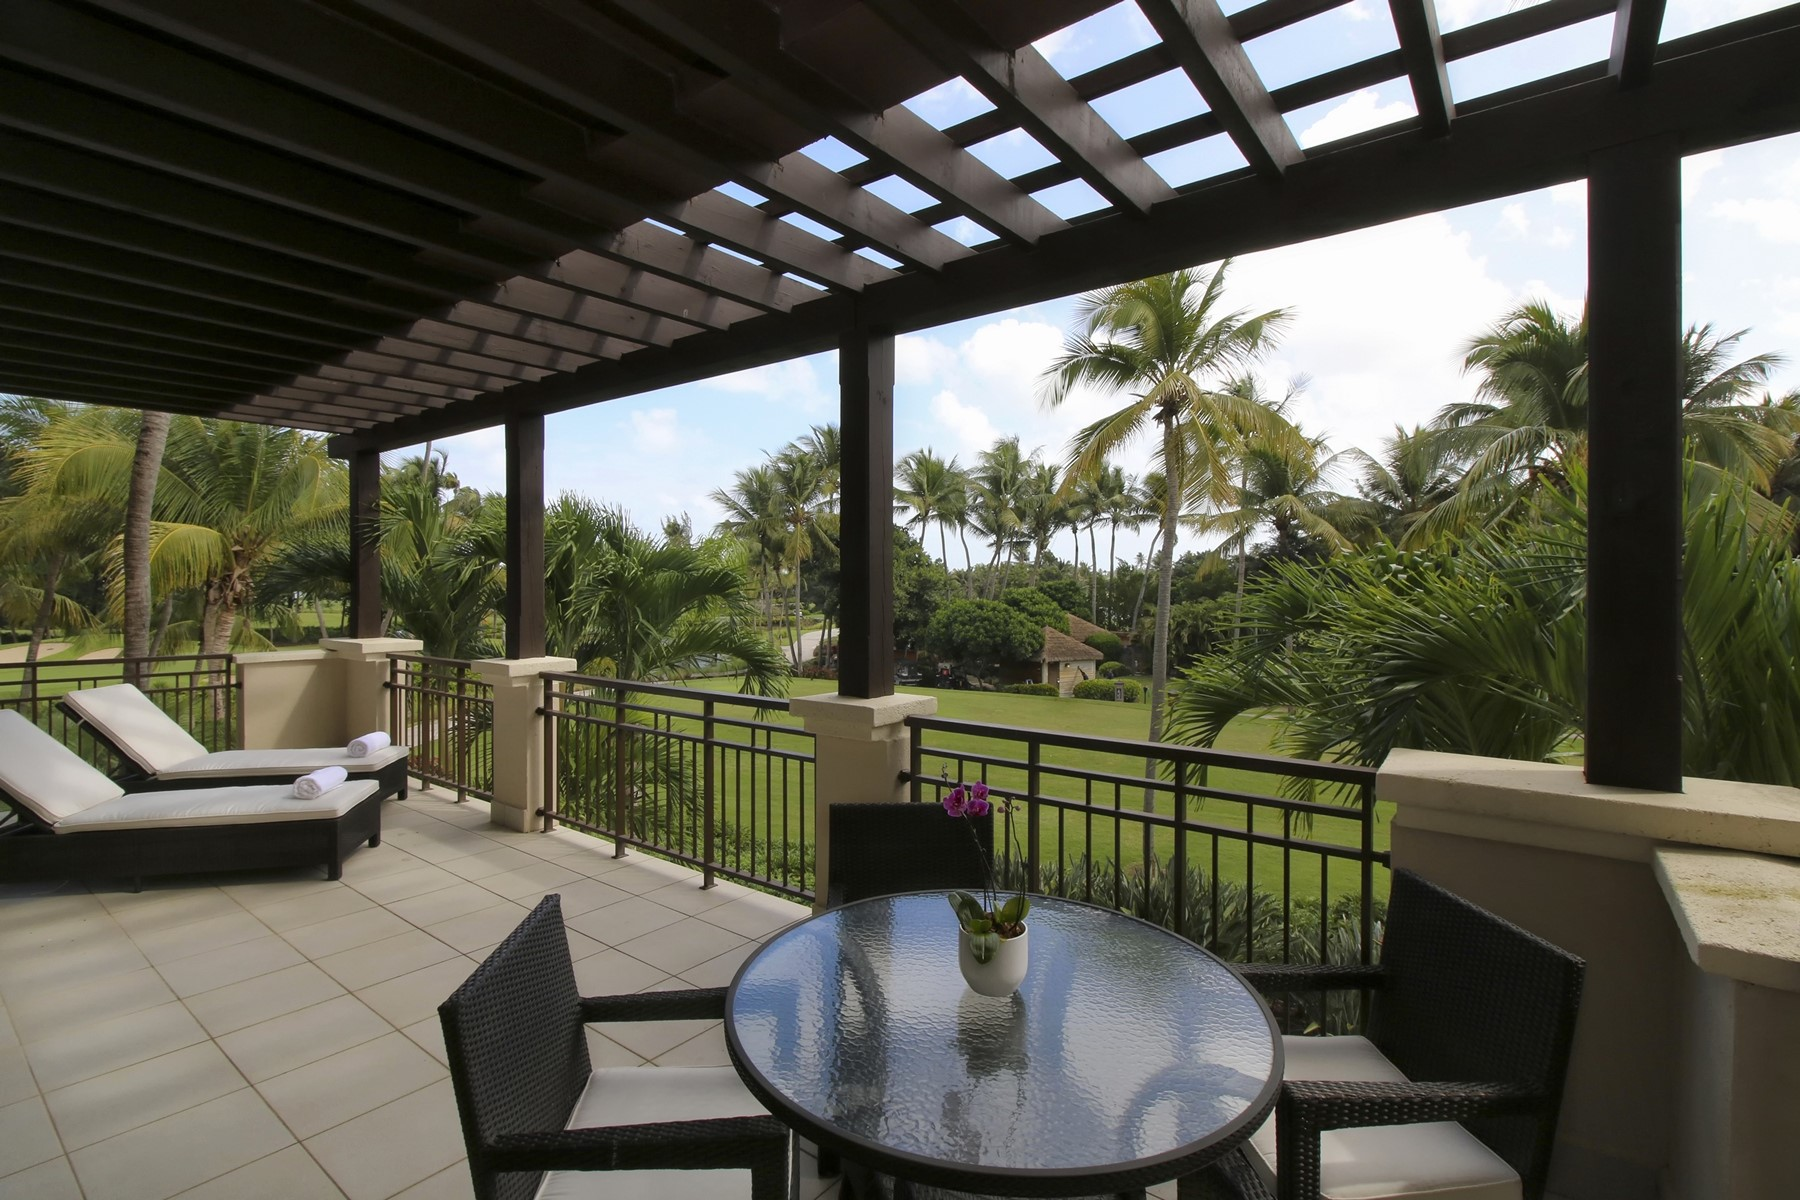 Apartment for Sale at Golf front villa, St Regis Bahia Beach State Road 187, Km. 4.2 St Regis, Bahia Beach Bahia Beach, Puerto Rico 00745 Puerto Rico